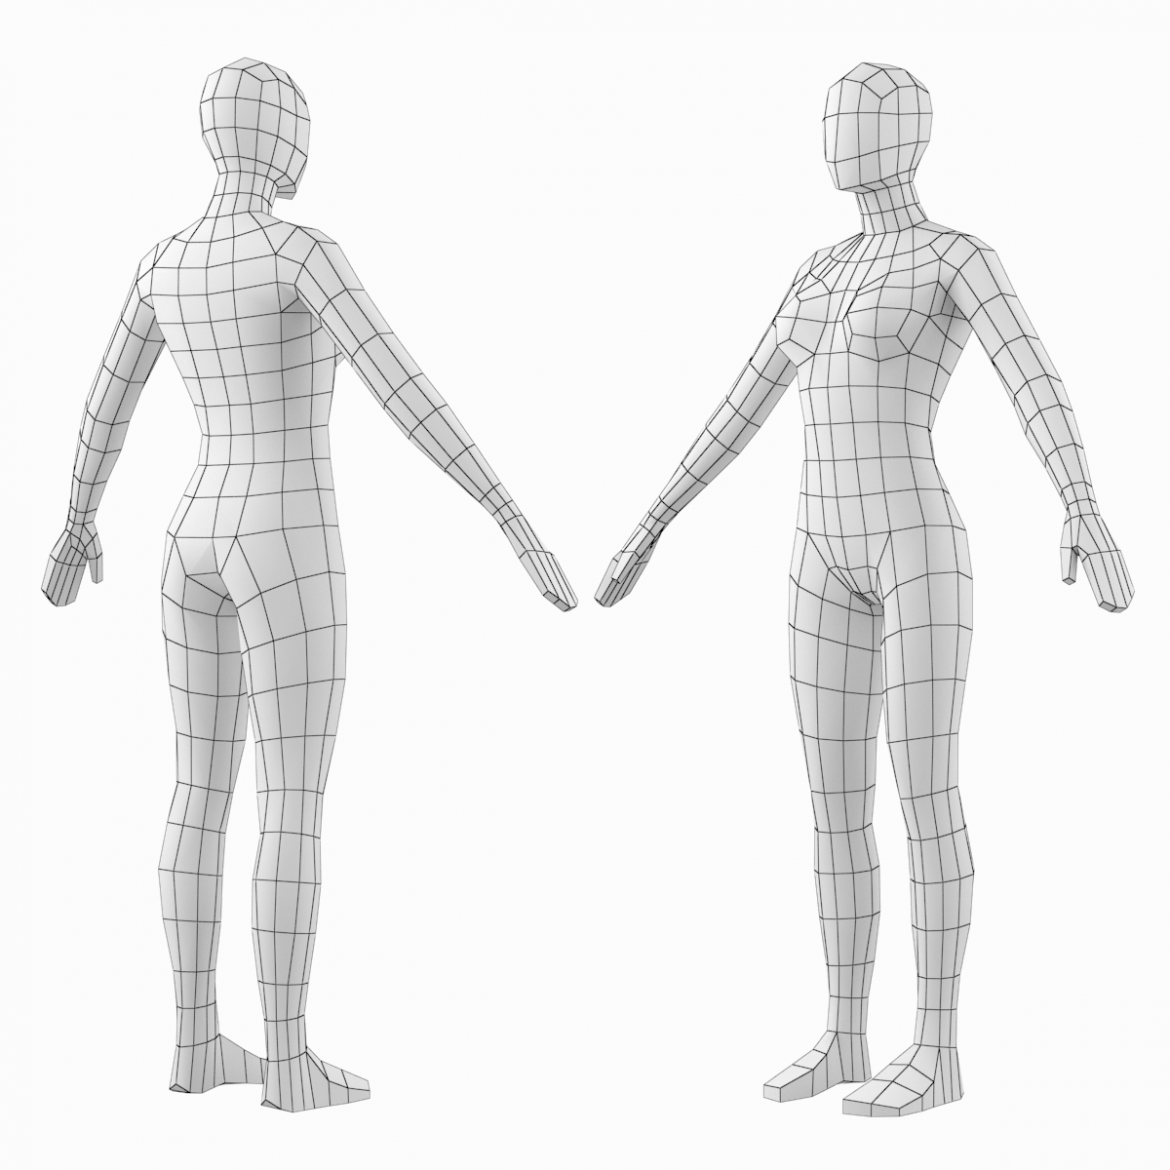 female base mesh natural proportions in a-pose 3d model 3ds max dxf dwg fbx c4d dae ma mb  obj 301362